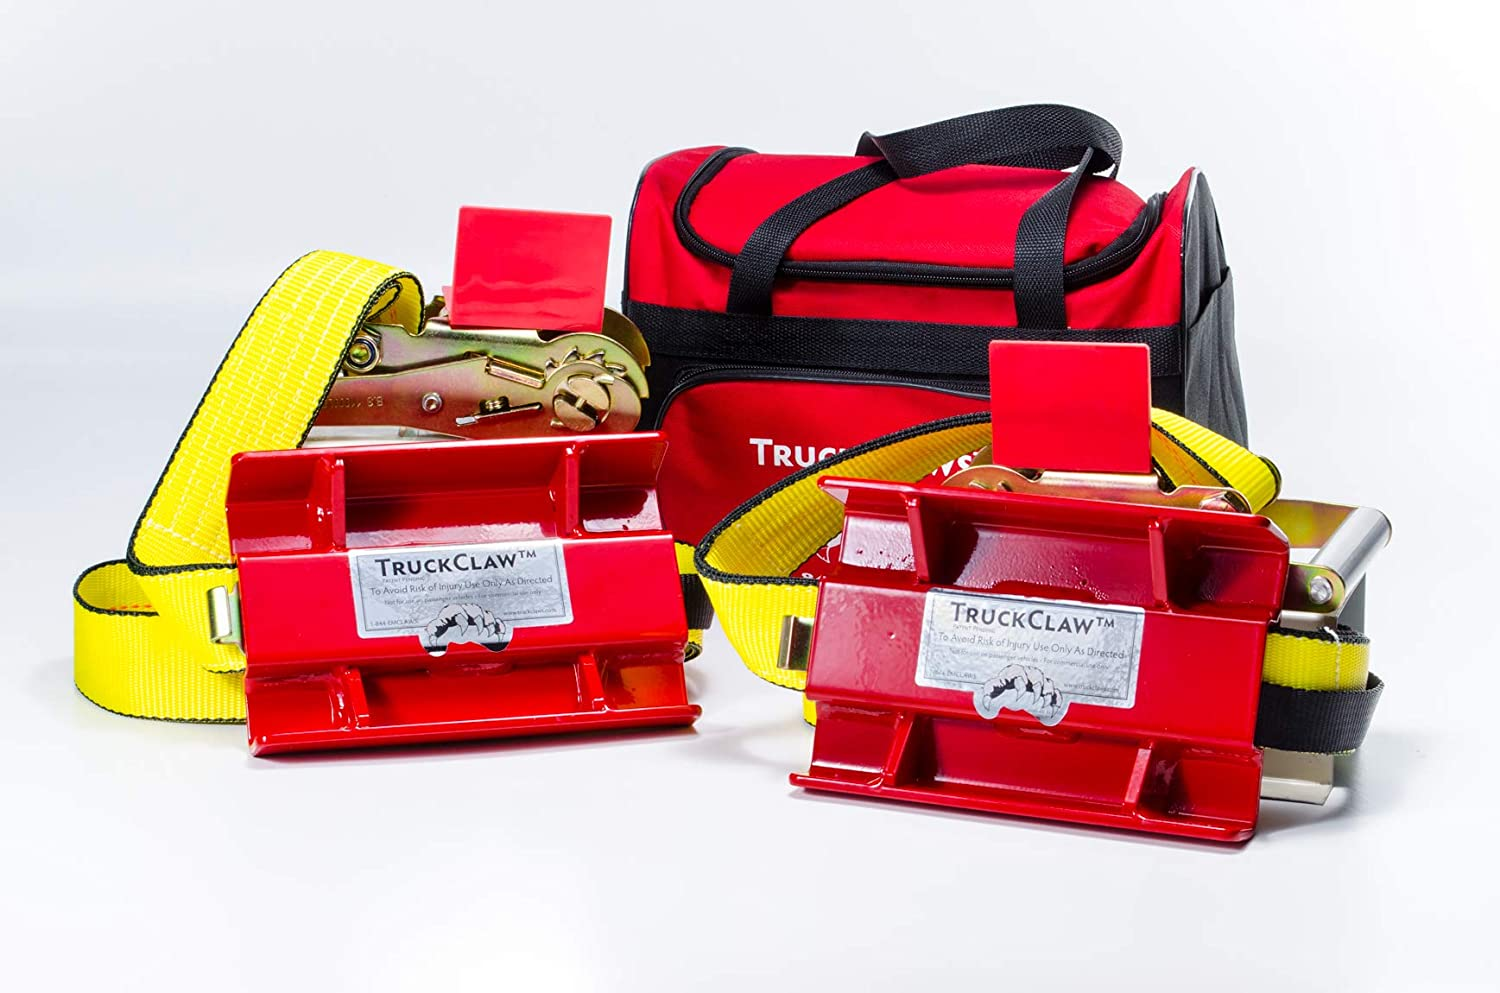 TruckClaws Commercial Truck Emergency Traction Aid Kit– (2) traction cleats, (2) 54 inch long straps, (2) heavy duty ratchets and (1) carry bag. For big rigs and large trucks with a GVW over 35,000lbs S&C Global Products